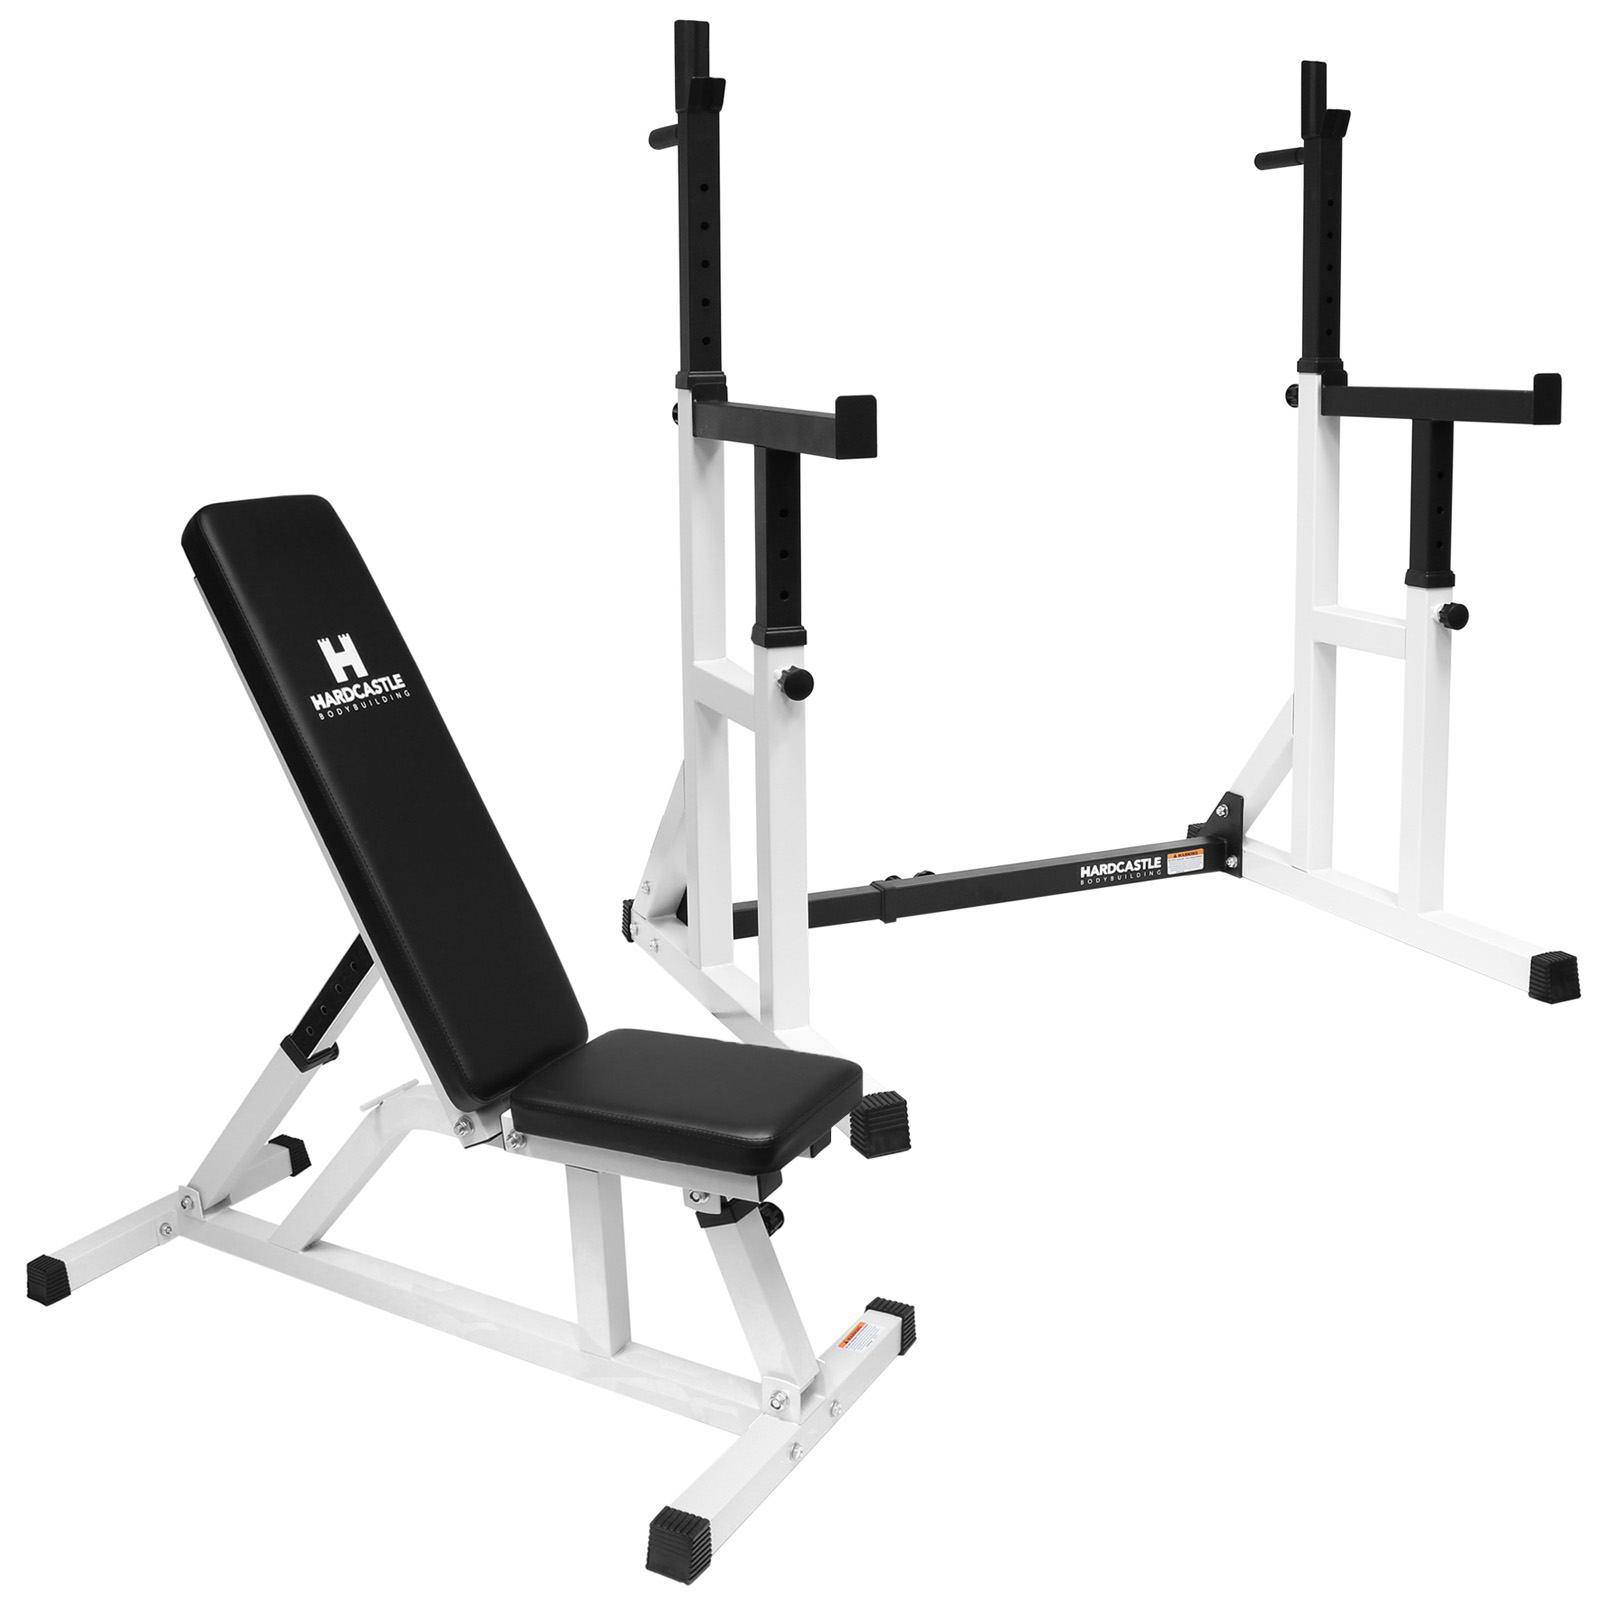 Bench Press for Sale | Weight Set with Bench for Sale | Craigslist Weight Bench